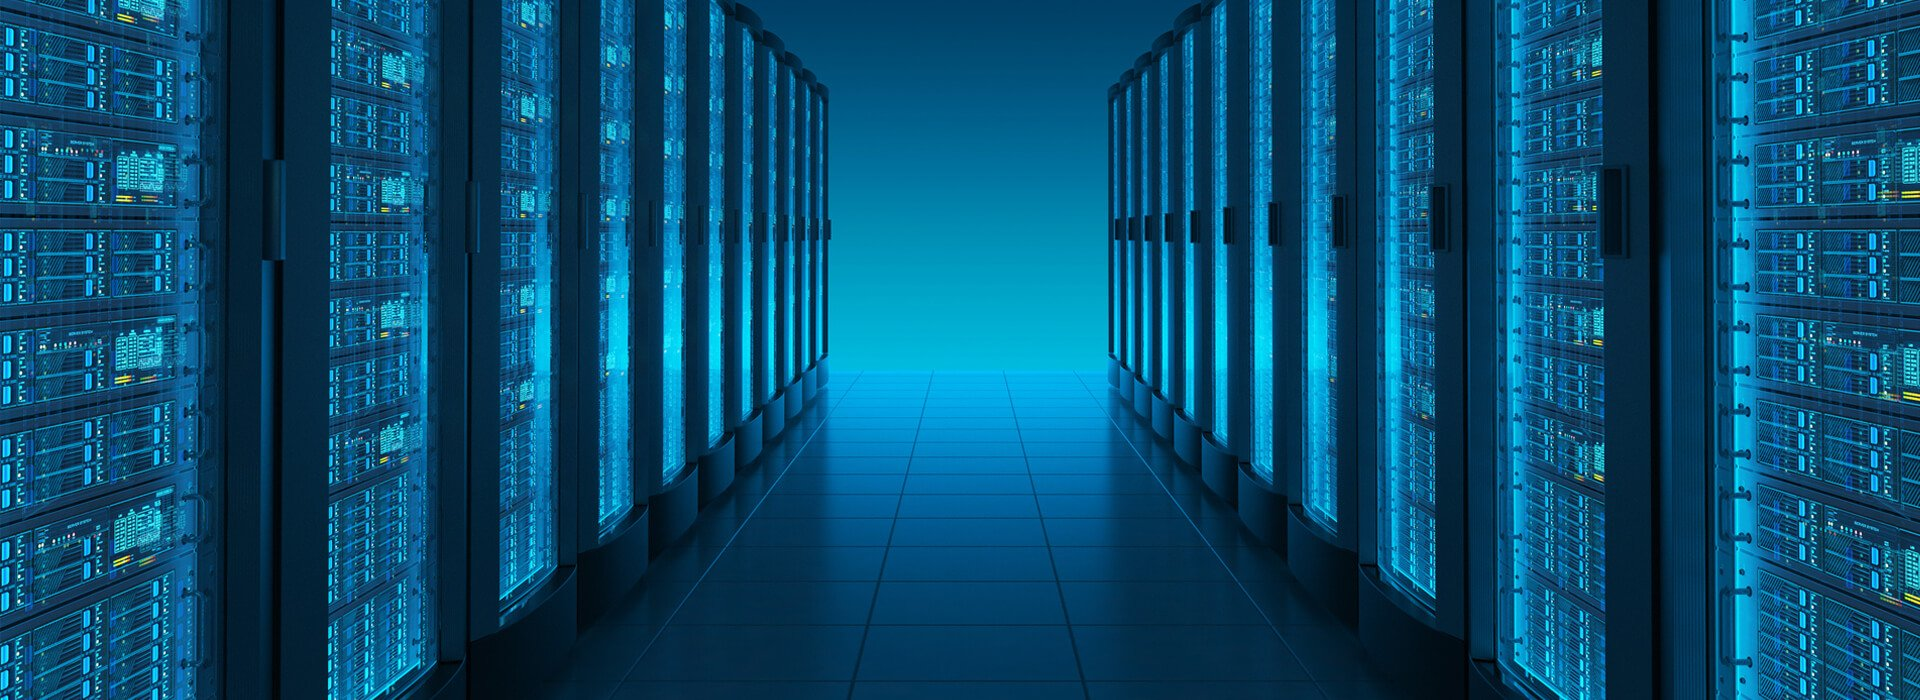 Windows Server 2012 - Die neue Serverplattform